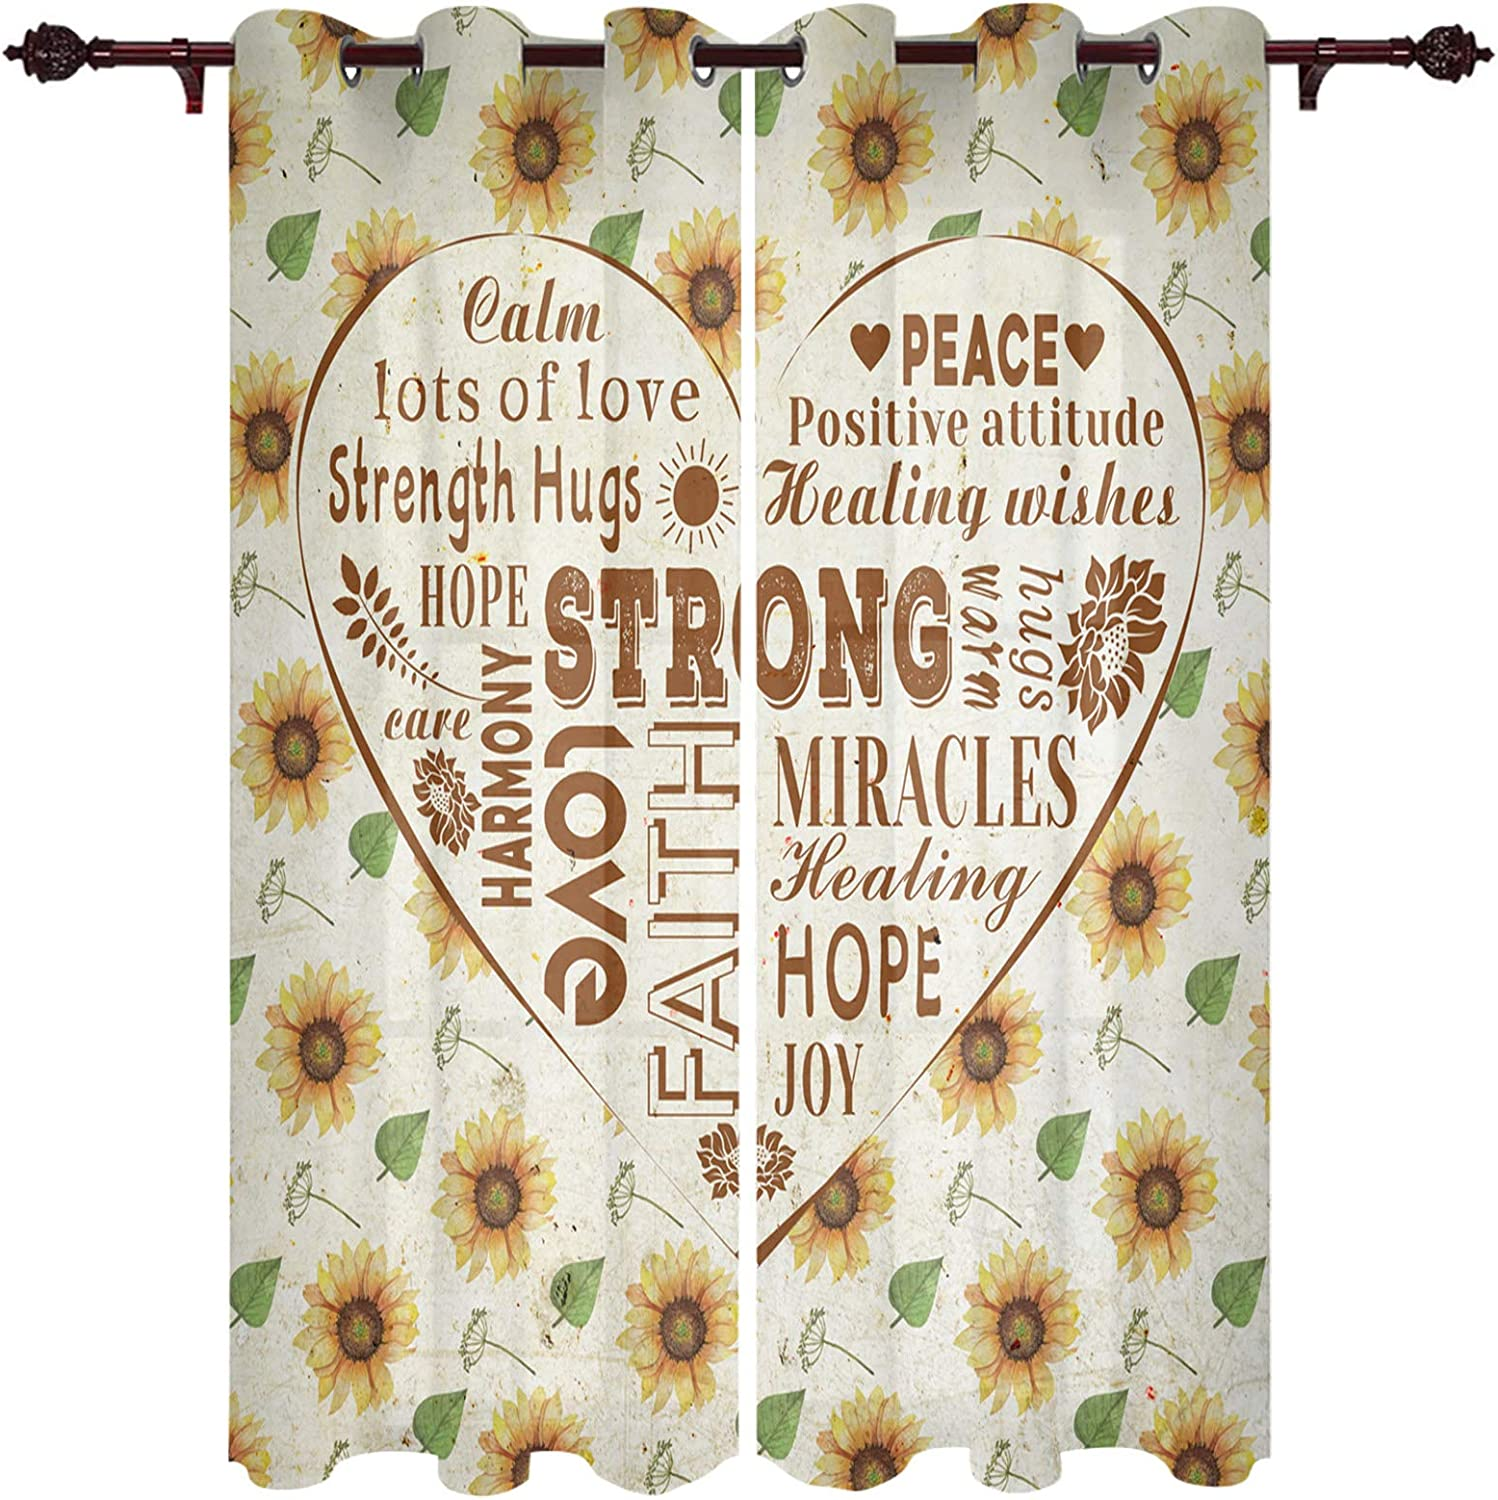 URDER 2 Curtain discount Panels Chicago Mall Grommet Drapes Window for Sunflow Bedroom